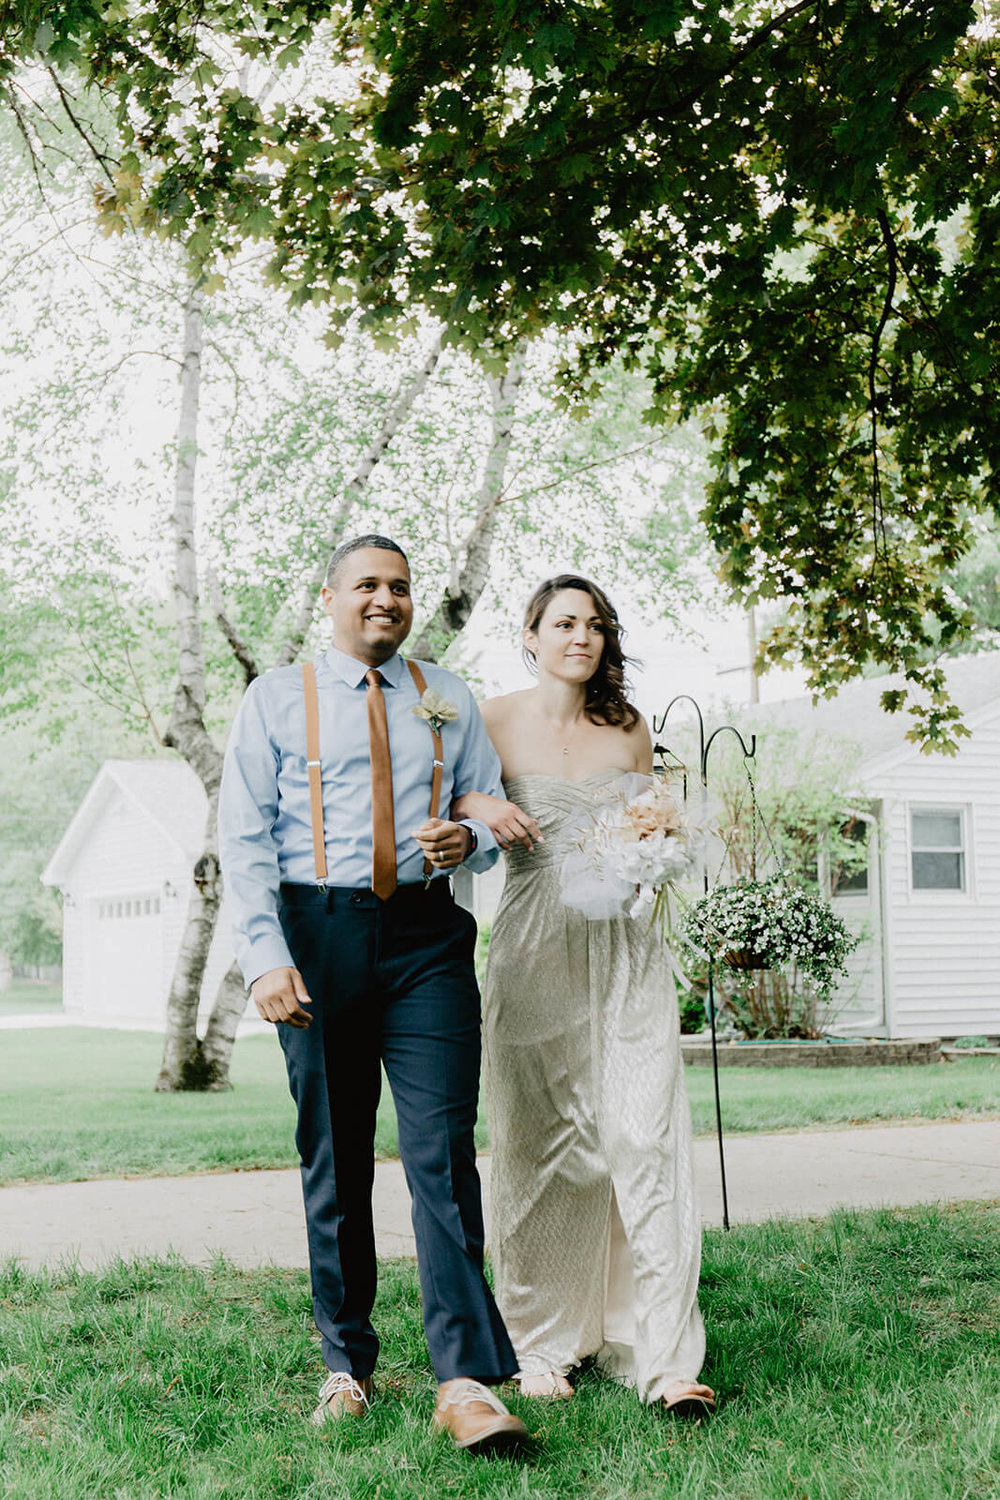 Alex + Lisi :: backyard Minnesota wedding :: Mads Lizotte photography :: Sixpence Events16.jpg